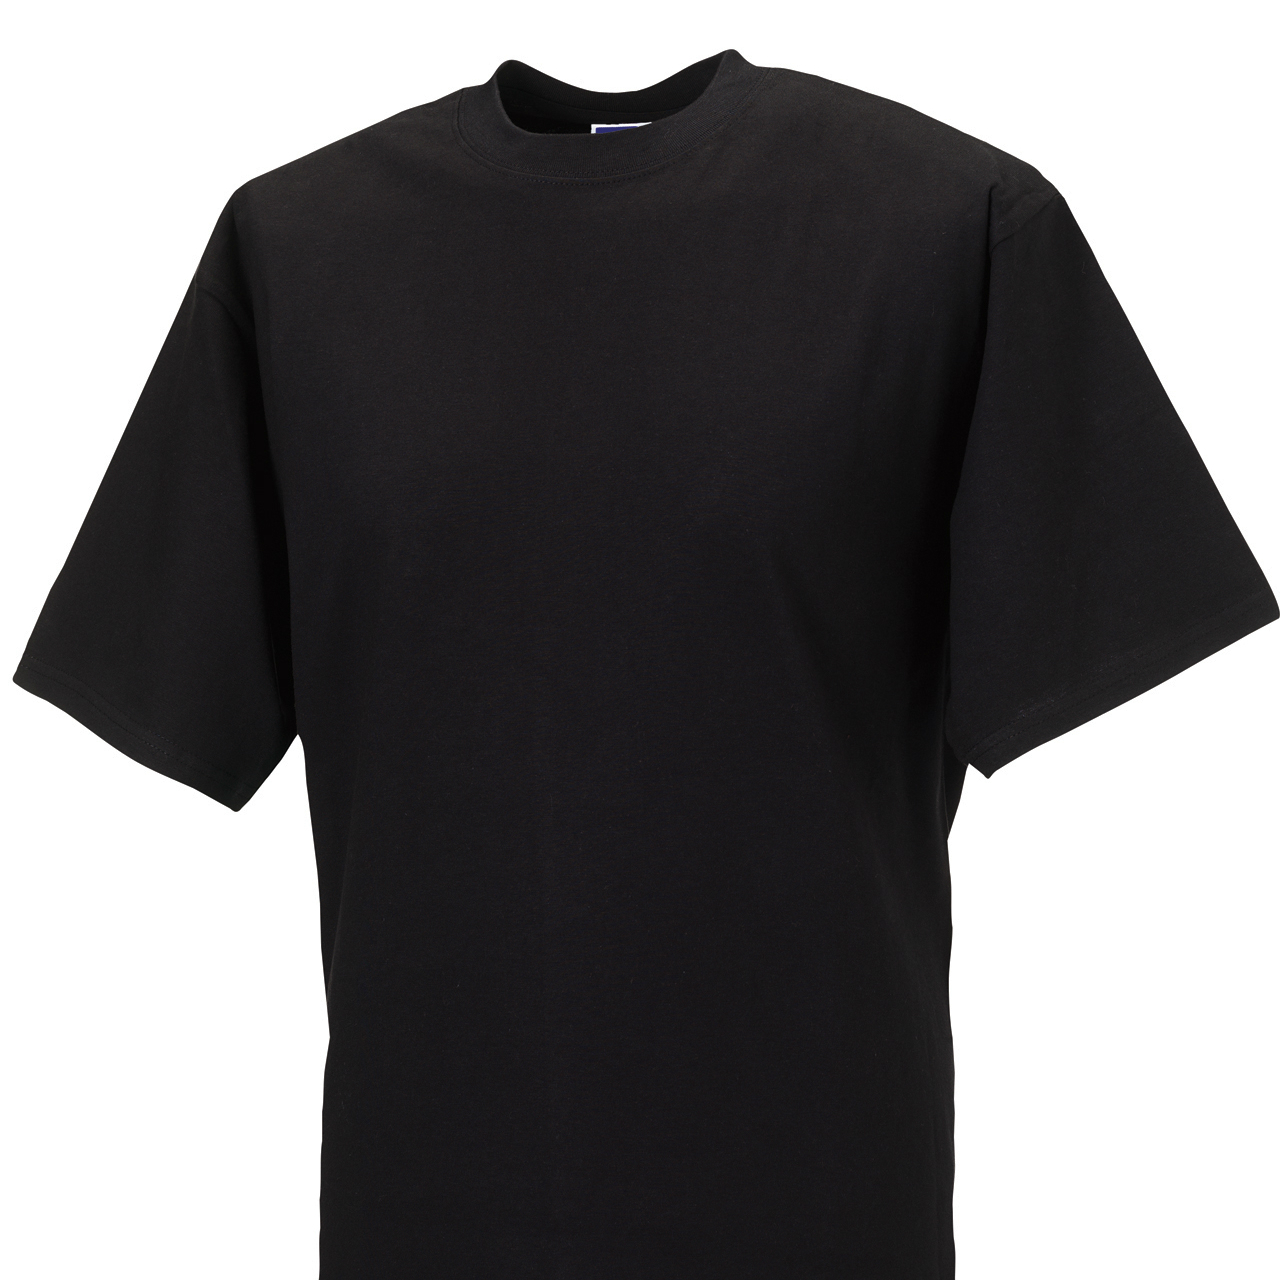 Black Printed T-Shirts from Jageto Embroidery and Print in Braintree, Essex UK